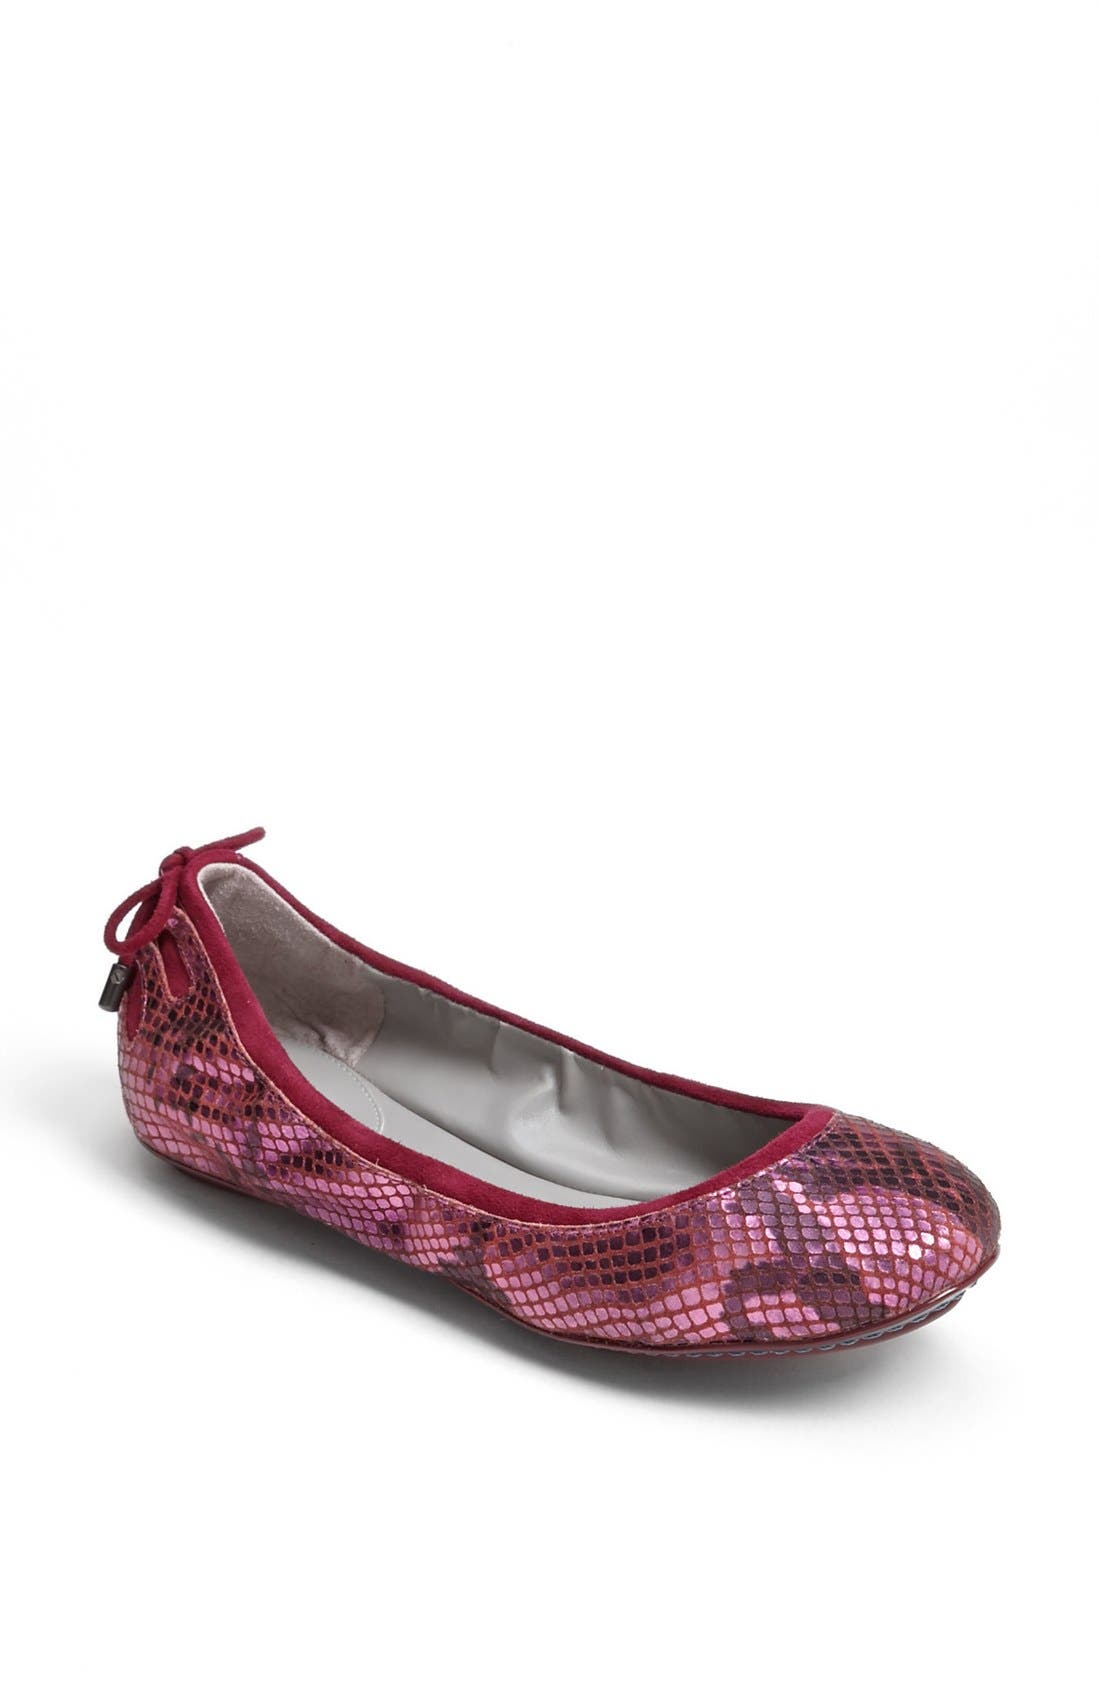 ,                             Maria Sharapova by Cole Haan 'Air Bacara' Flat,                             Main thumbnail 79, color,                             500